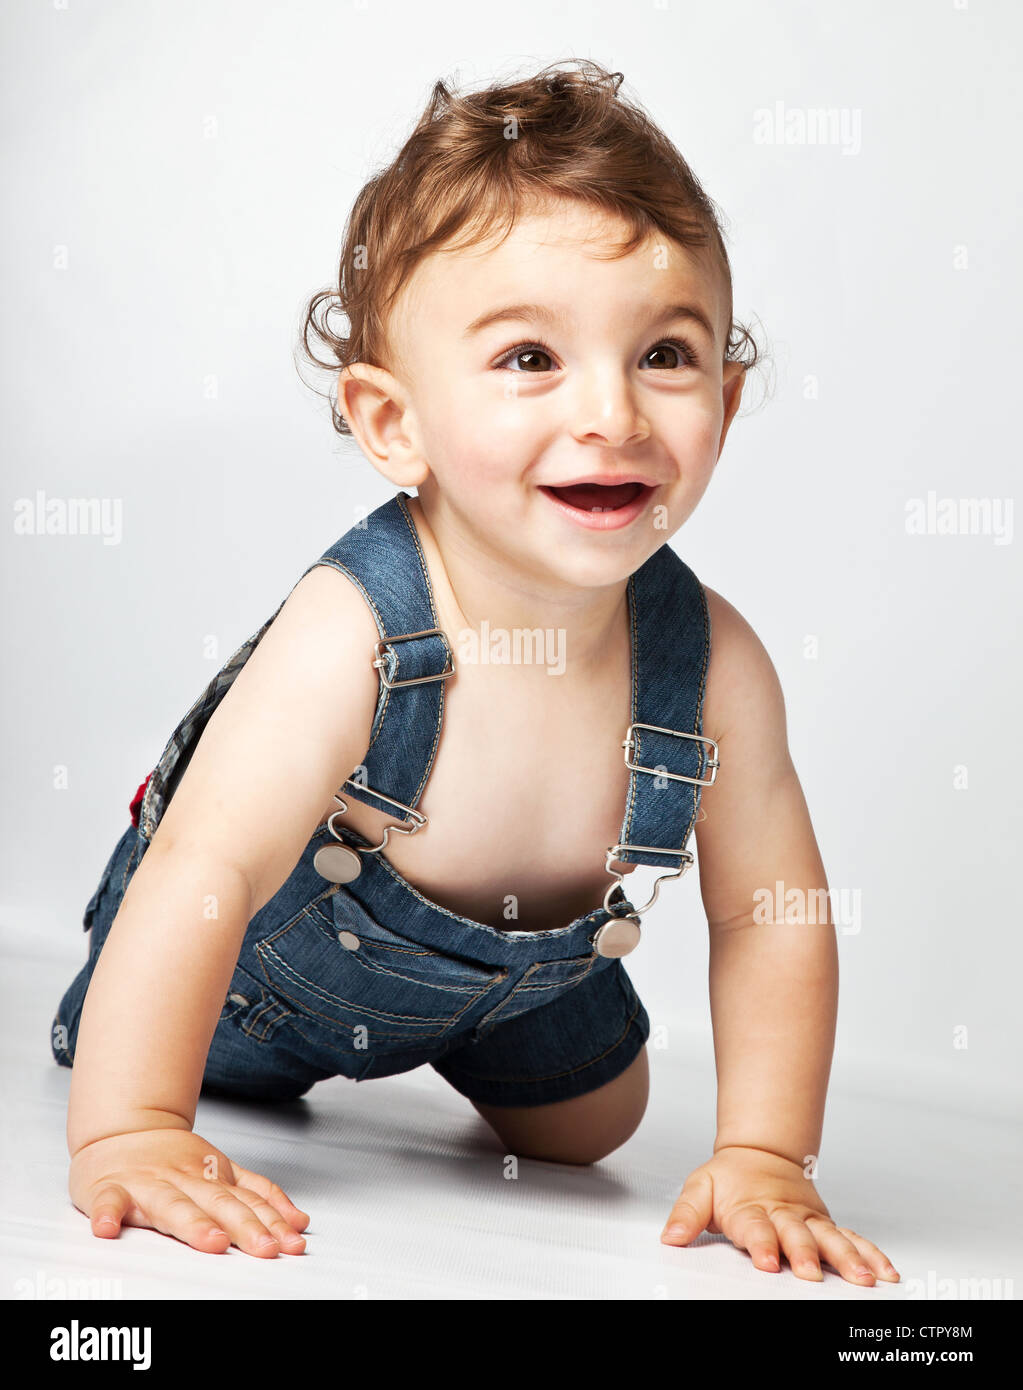 happy baby boy creeping on studio floor, beautiful cute cheerful kid